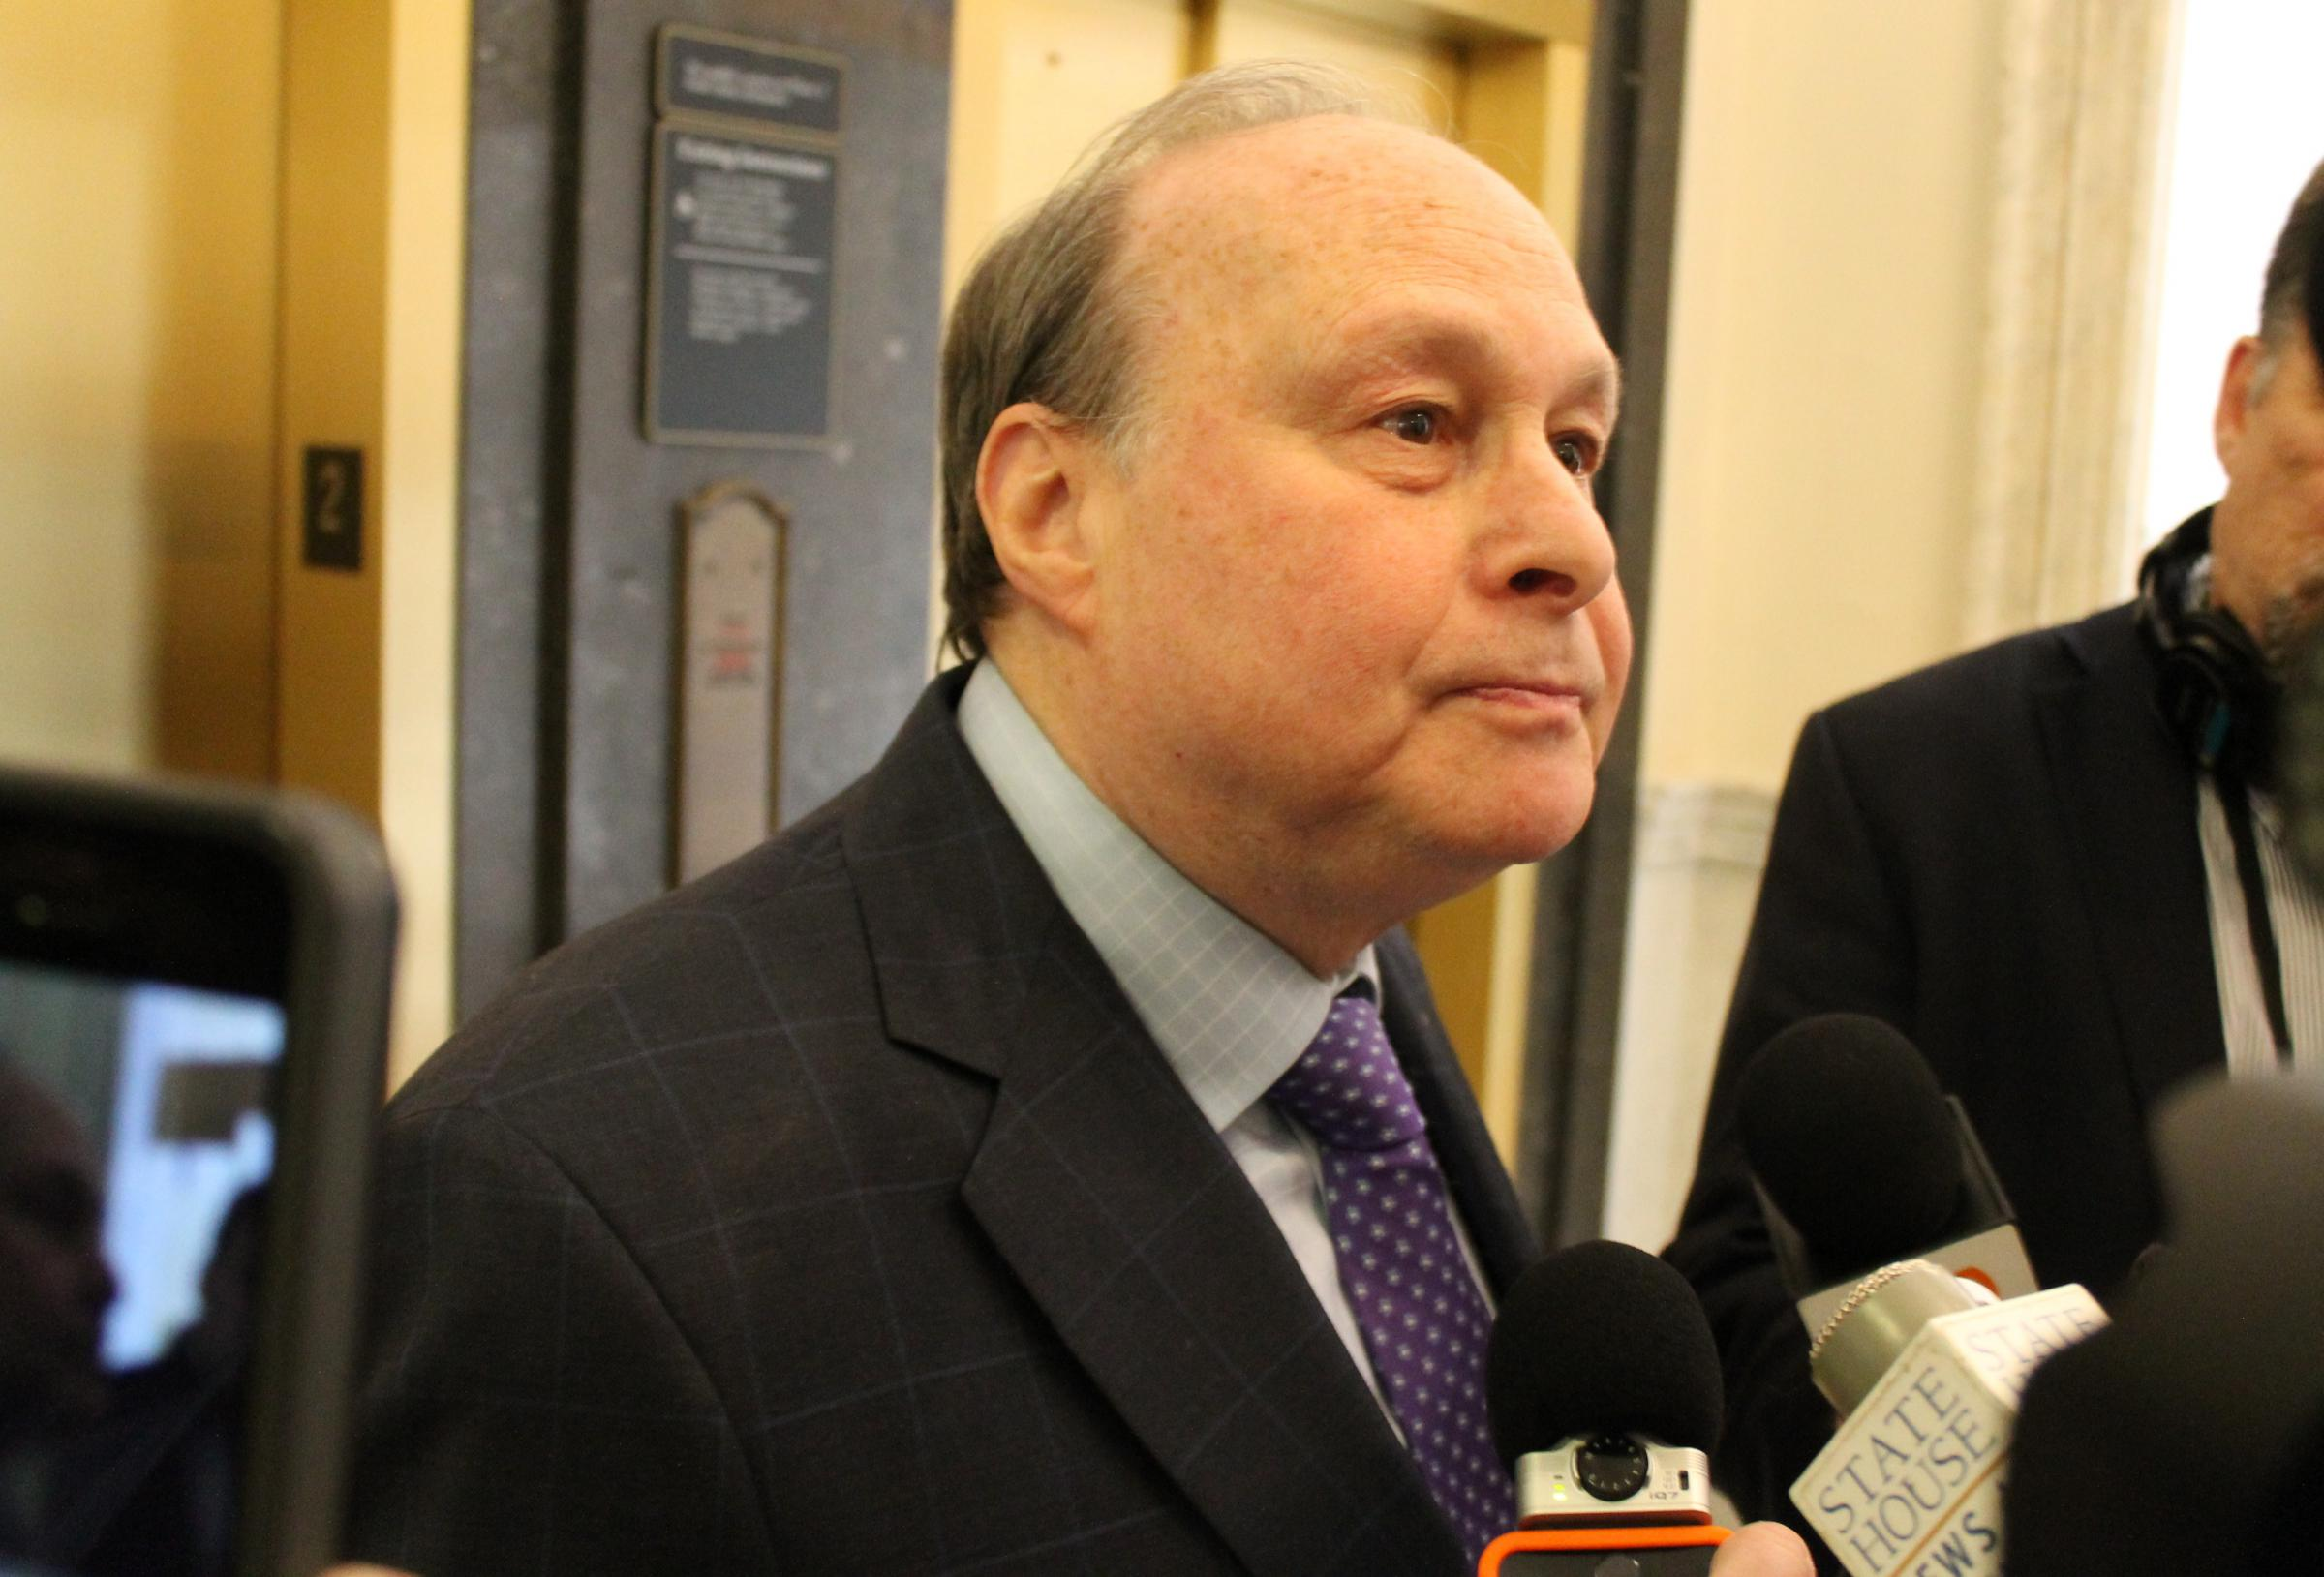 Colleagues instructed to 'minimize contact' with Sen. Stan Rosenberg during ethics investigation